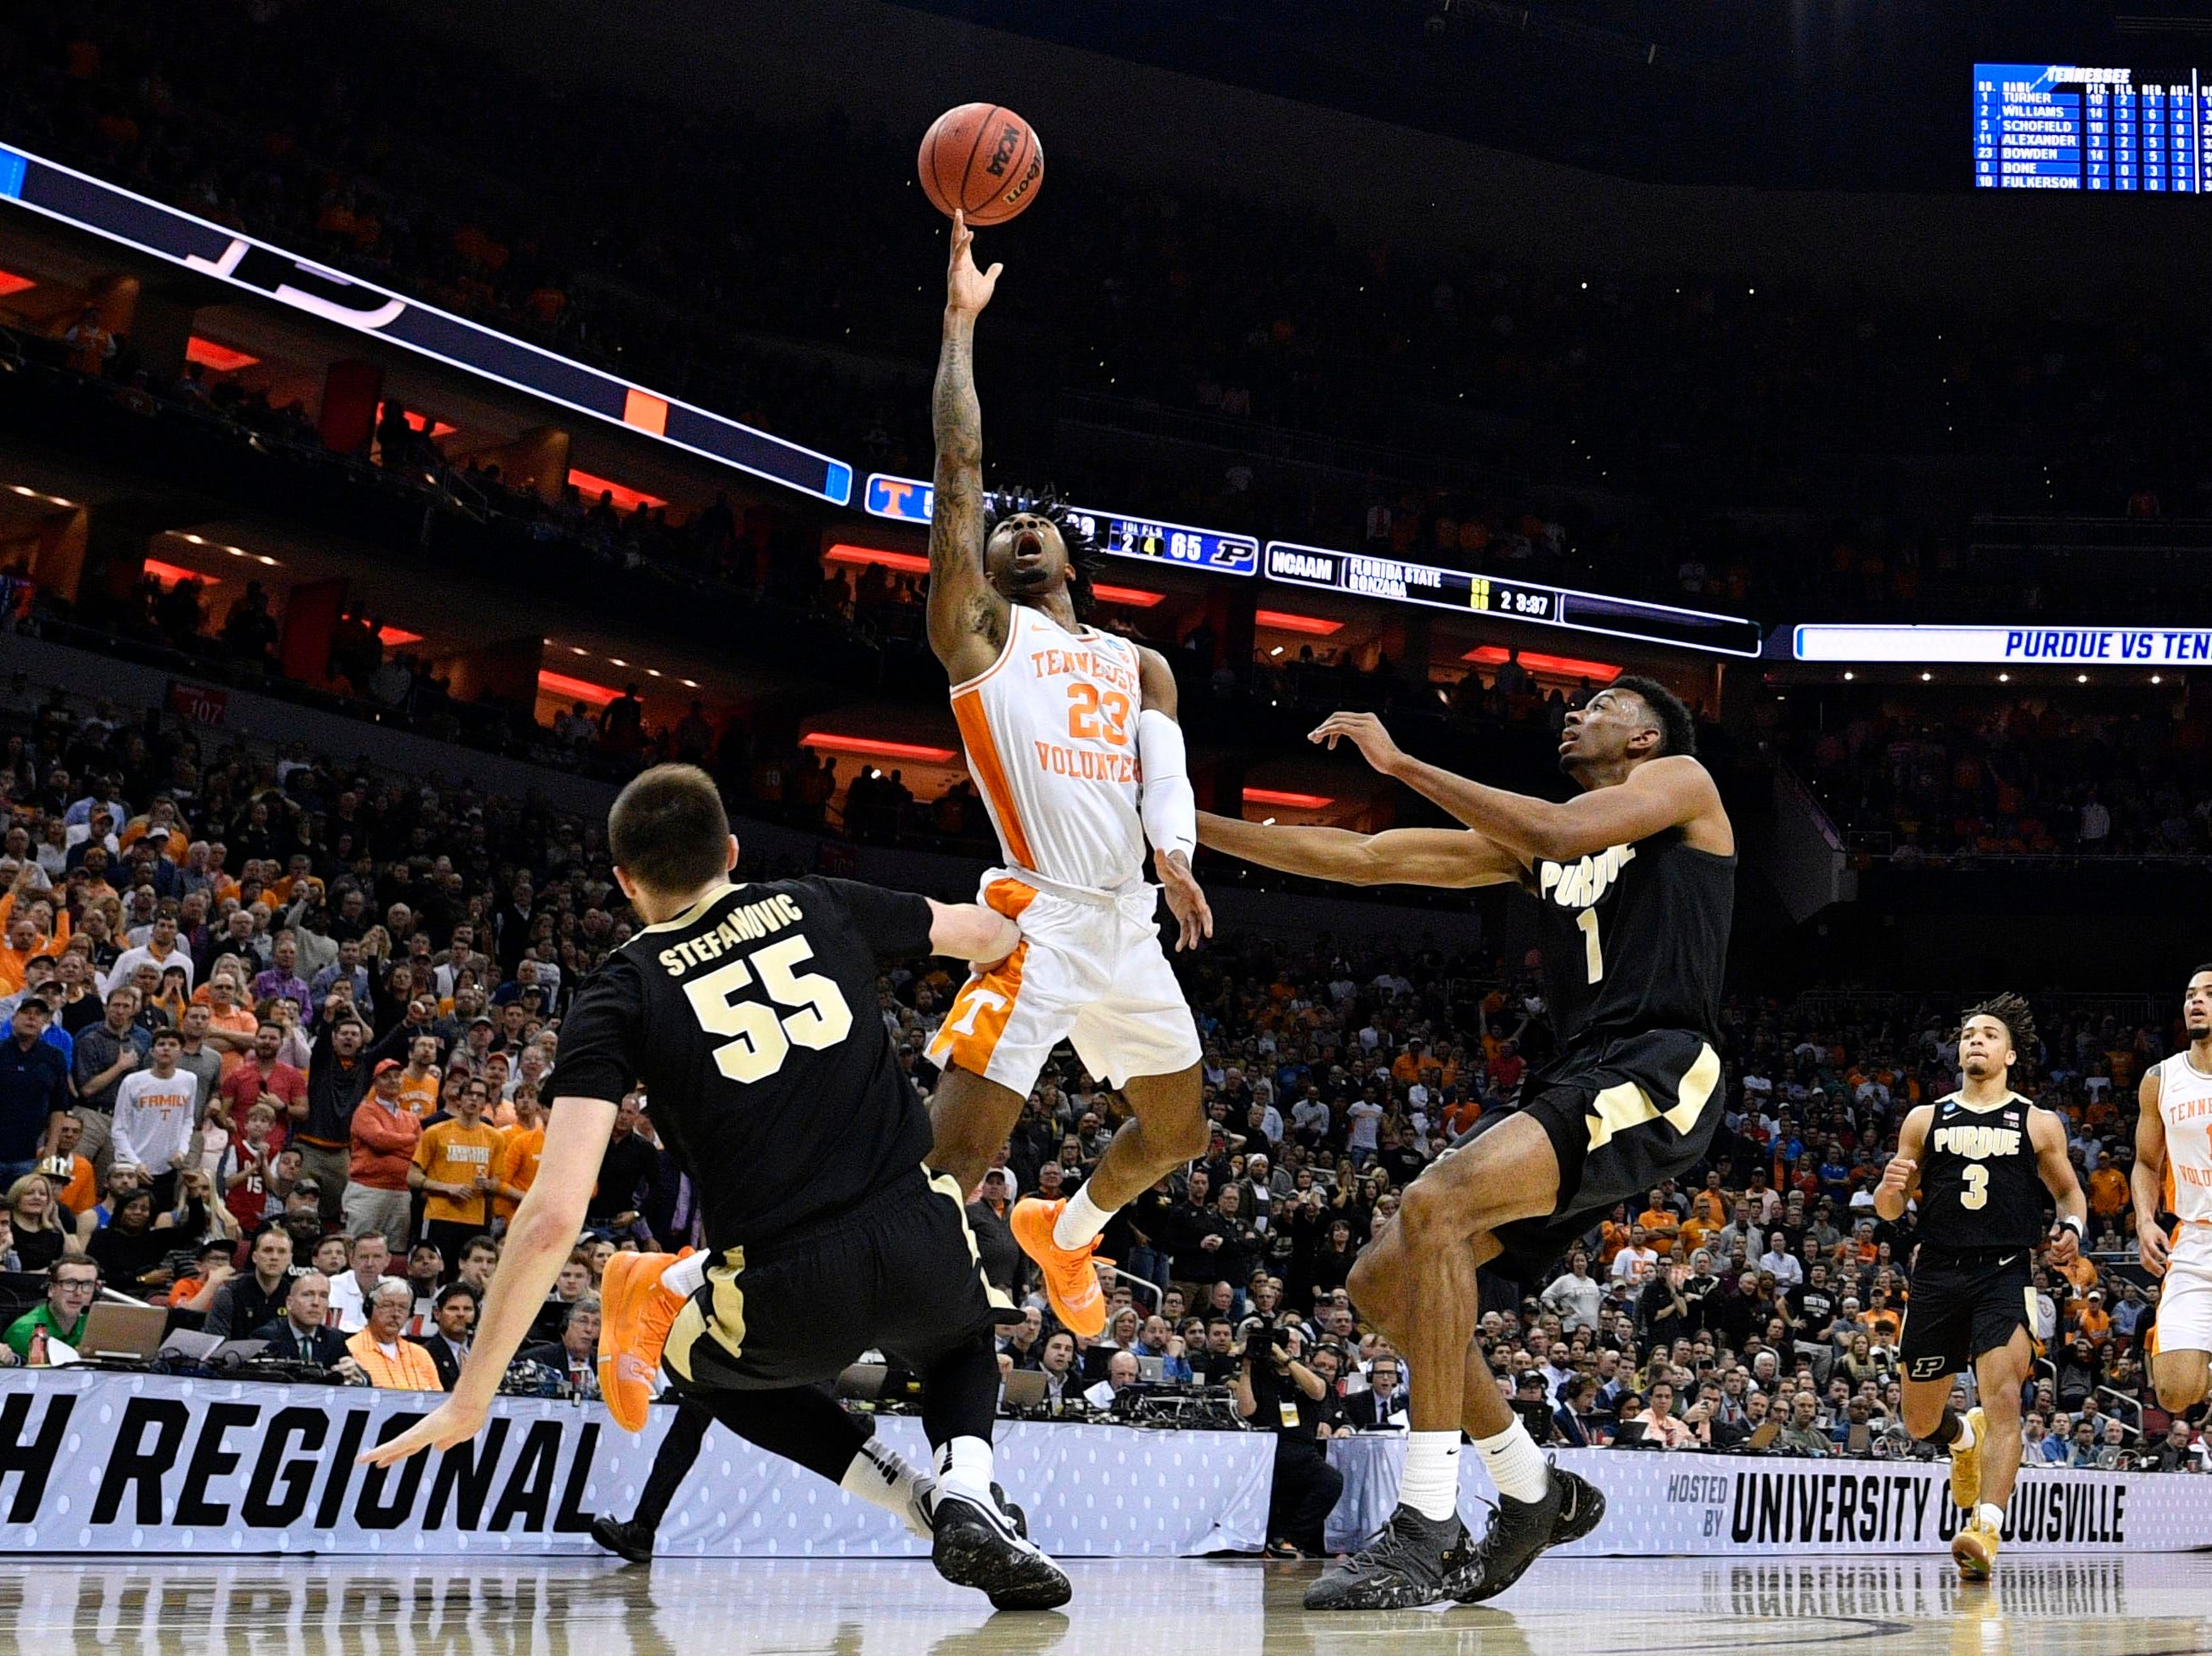 Mar 28, 2019; Louisville, KY, United States; Tennessee Volunteers guard Jordan Bowden (23) shoots as Purdue Boilermakers guard Sasha Stefanovic (55) falls and forward Aaron Wheeler (1) looks on during the second half in the semifinals of the south regional of the 2019 NCAA Tournament at KFC Yum Center. Mandatory Credit: Jamie Rhodes-USA TODAY Sports